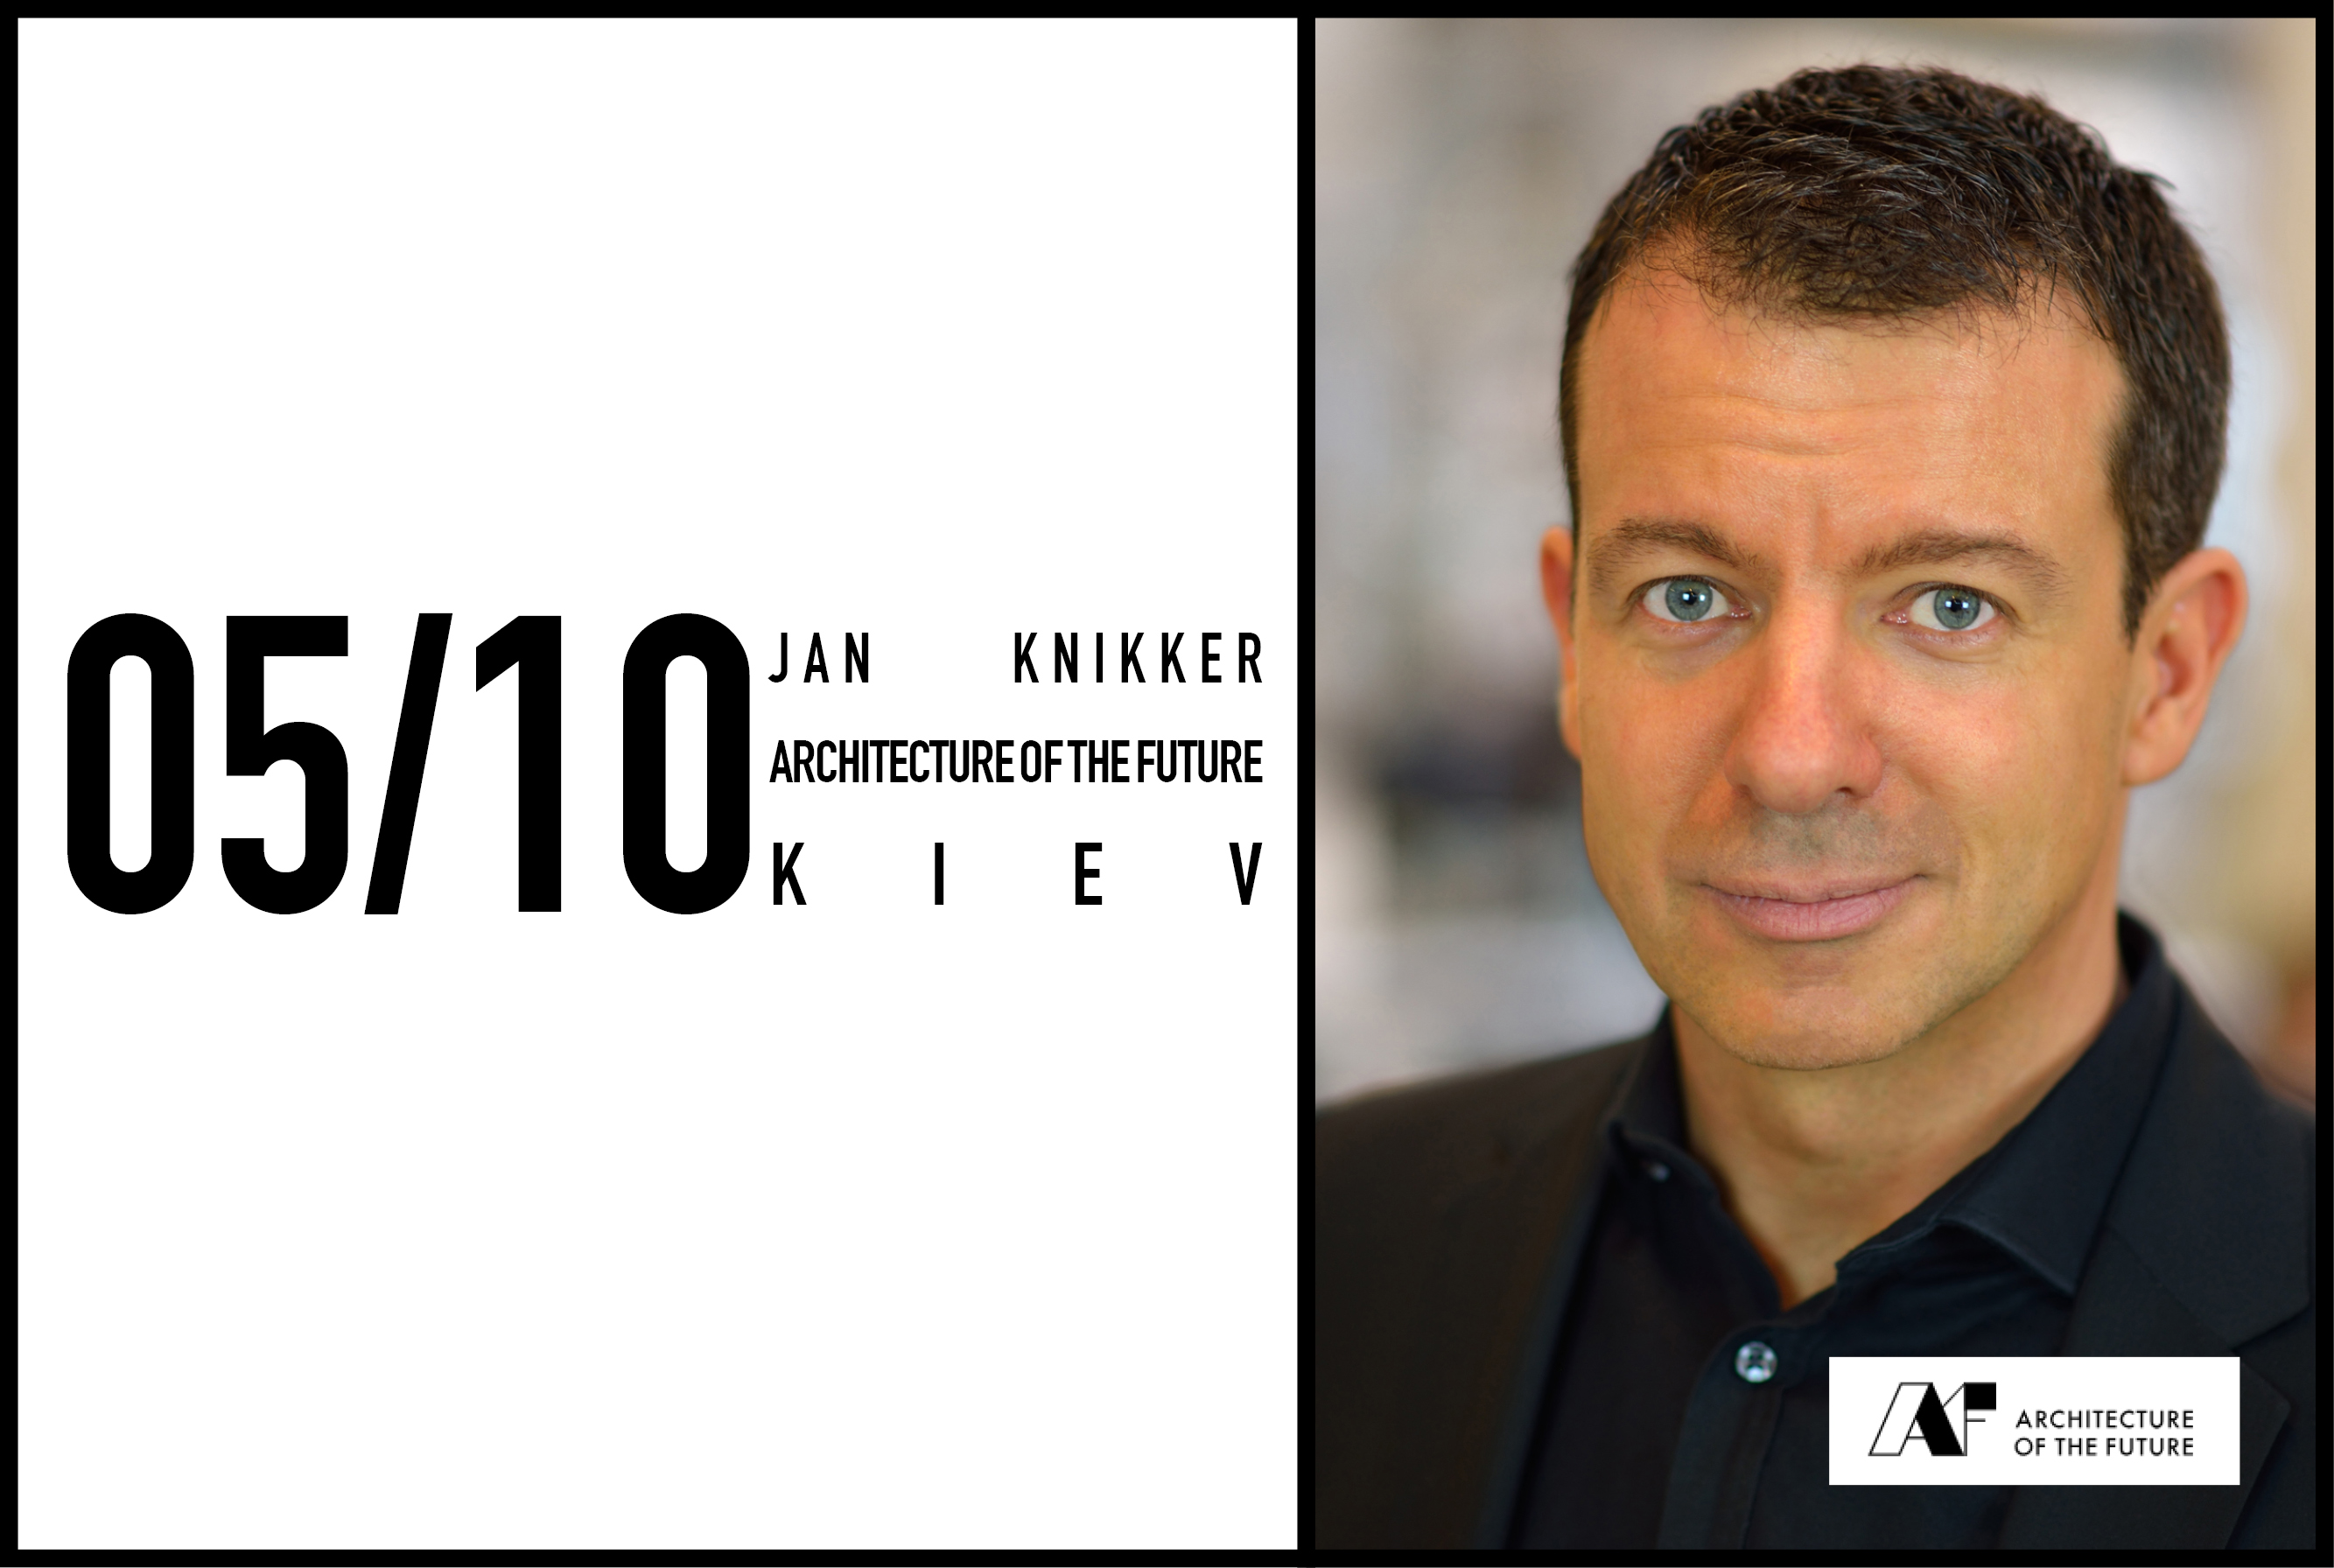 Jan Knikker to speak at Architecture of the Future Conference